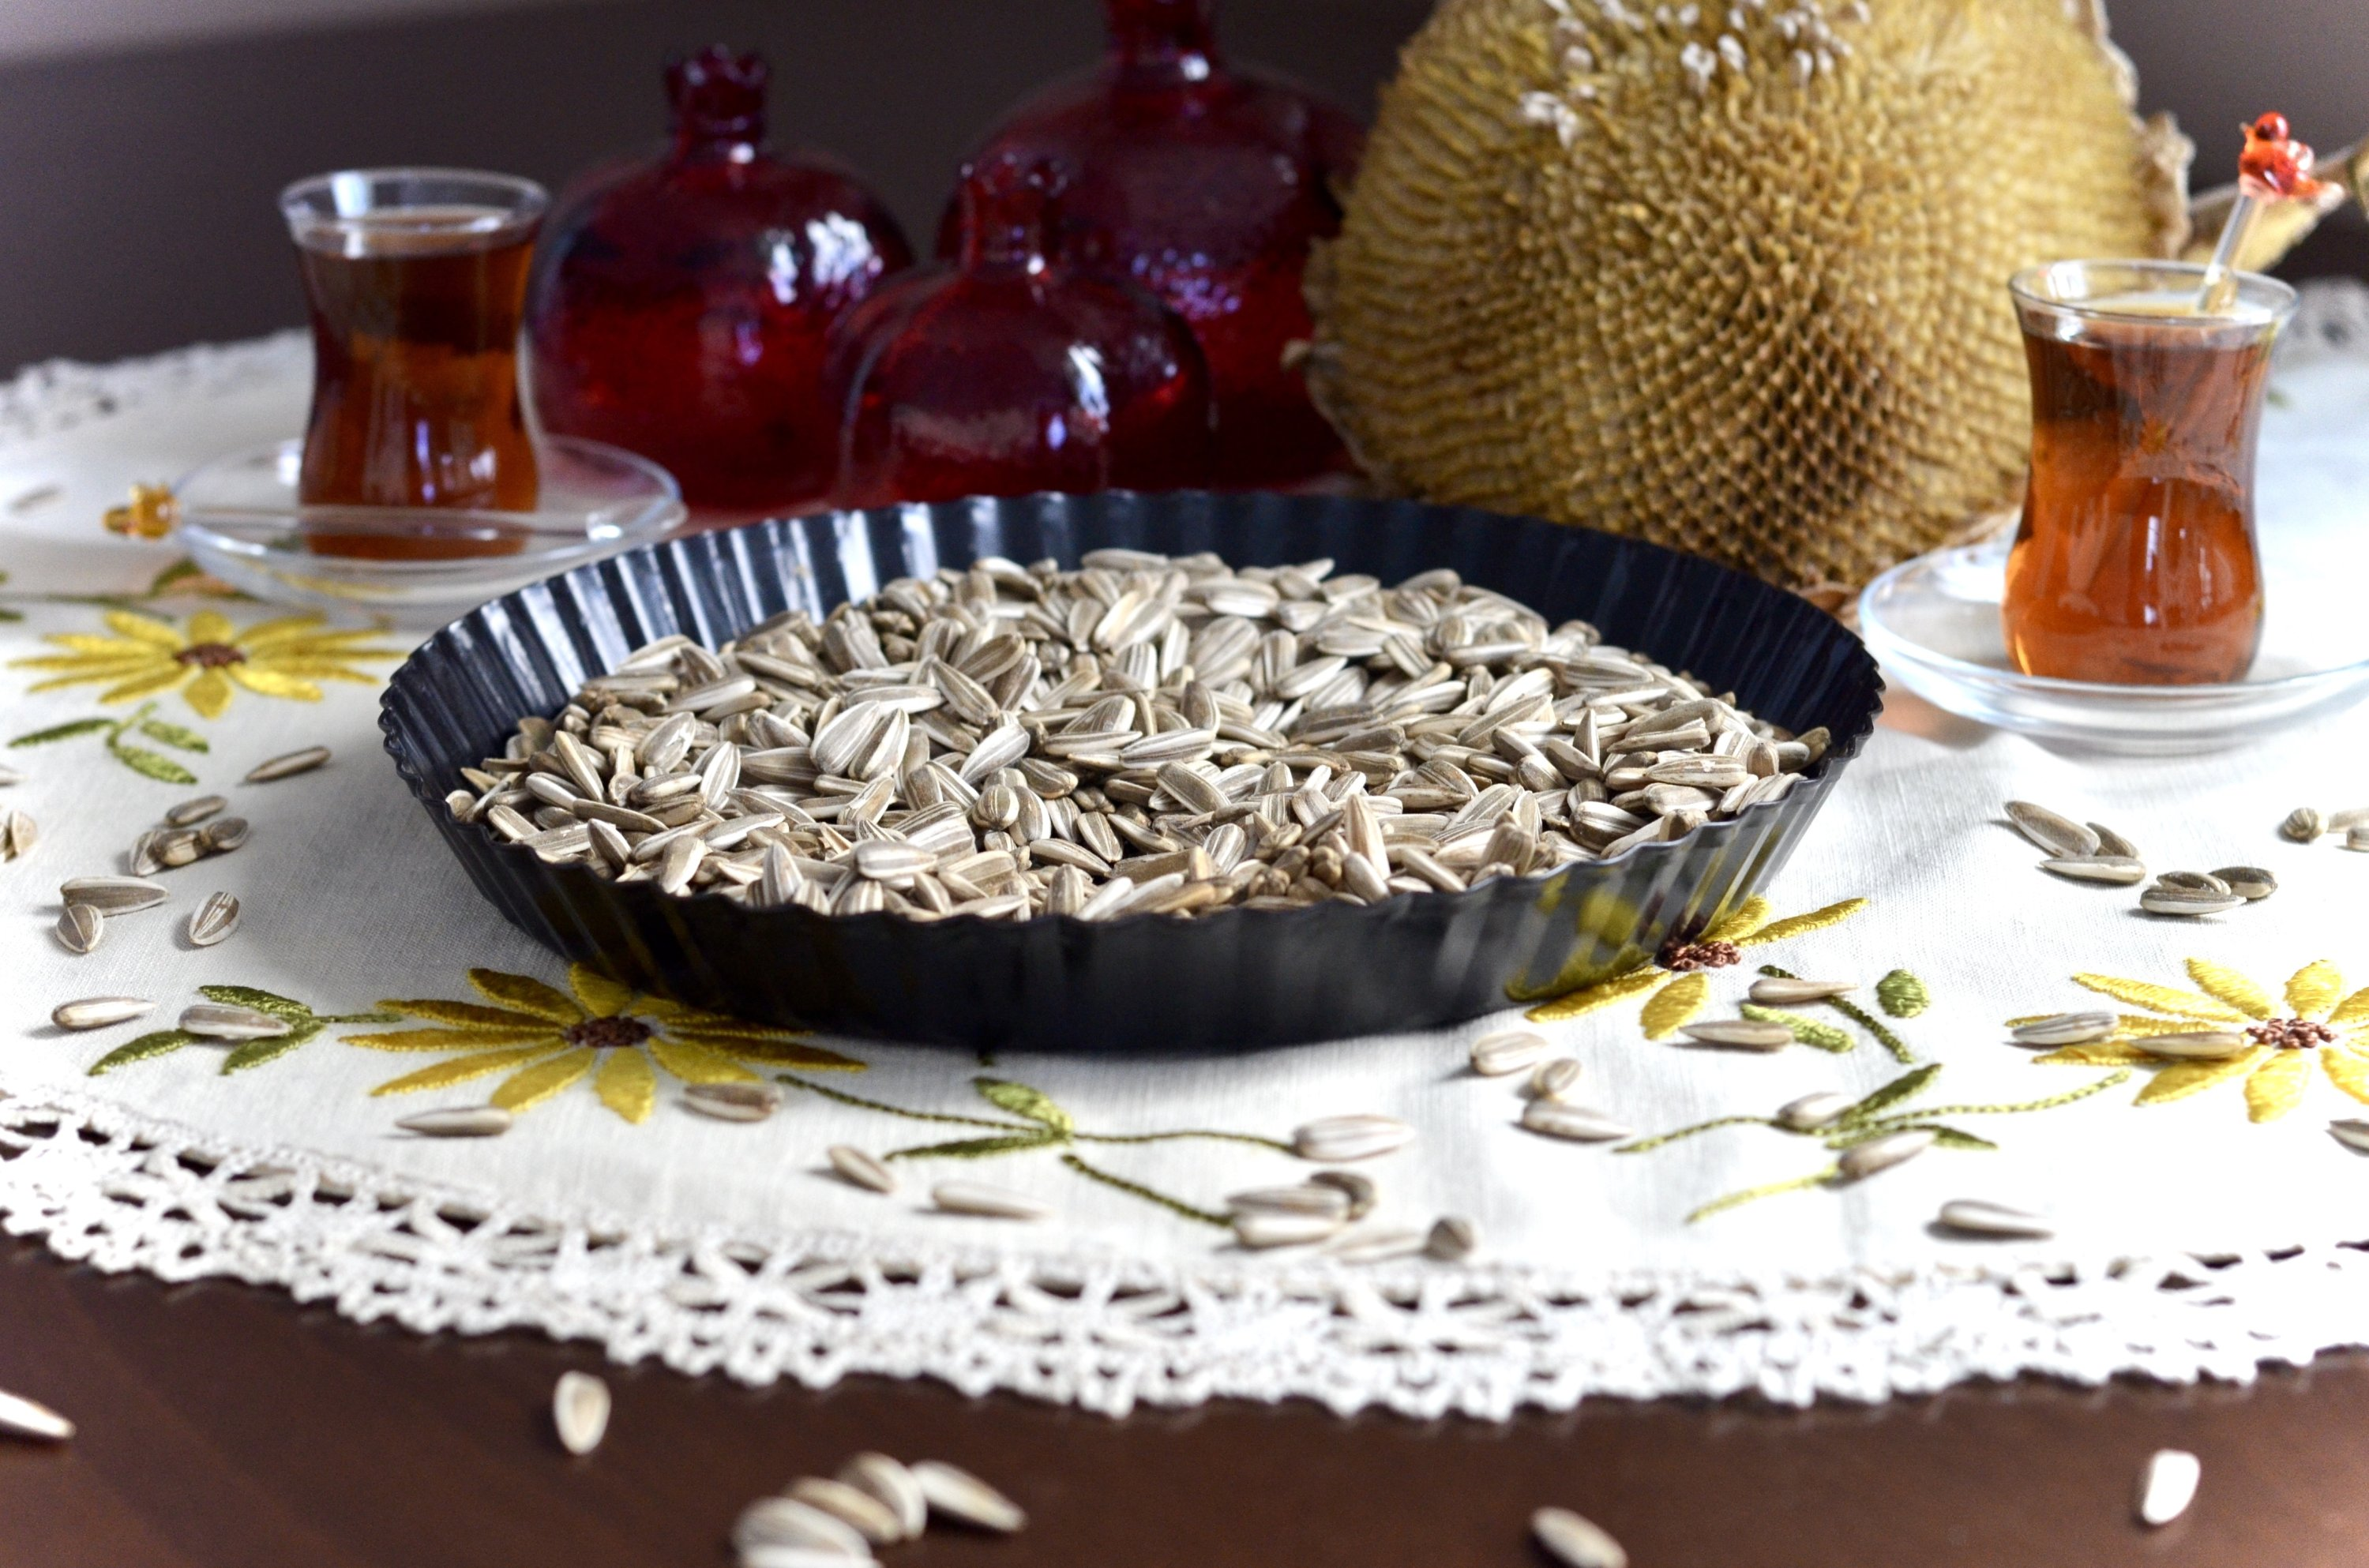 Dried sunflower seeds make for a great snack, and an accompanying glass of tea fights the saltiness. (Photo courtesy of Emre Yartaşı)